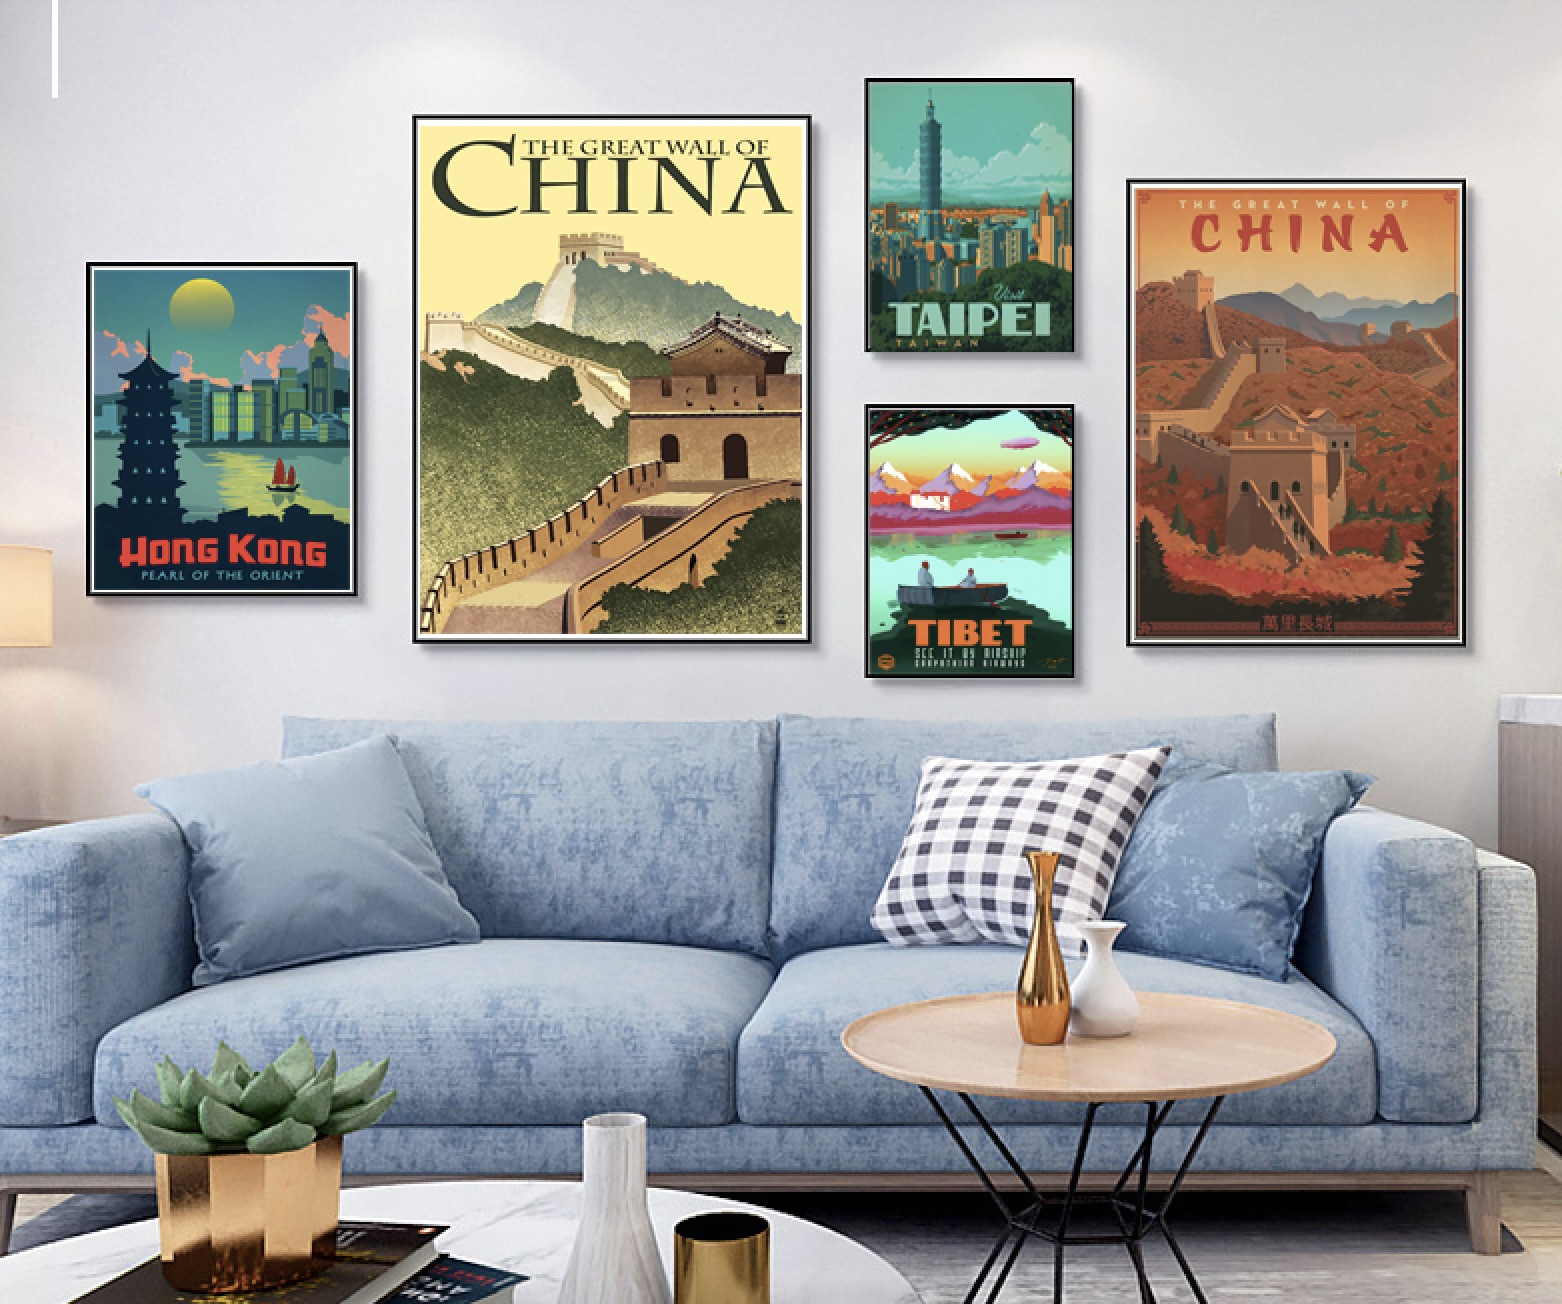 China Travel Great Wall HongKong Tibet Taipei Landscape Scenic Vintage Poster Canvas Painting Wall Art Home Sticker Decor Gift(China)